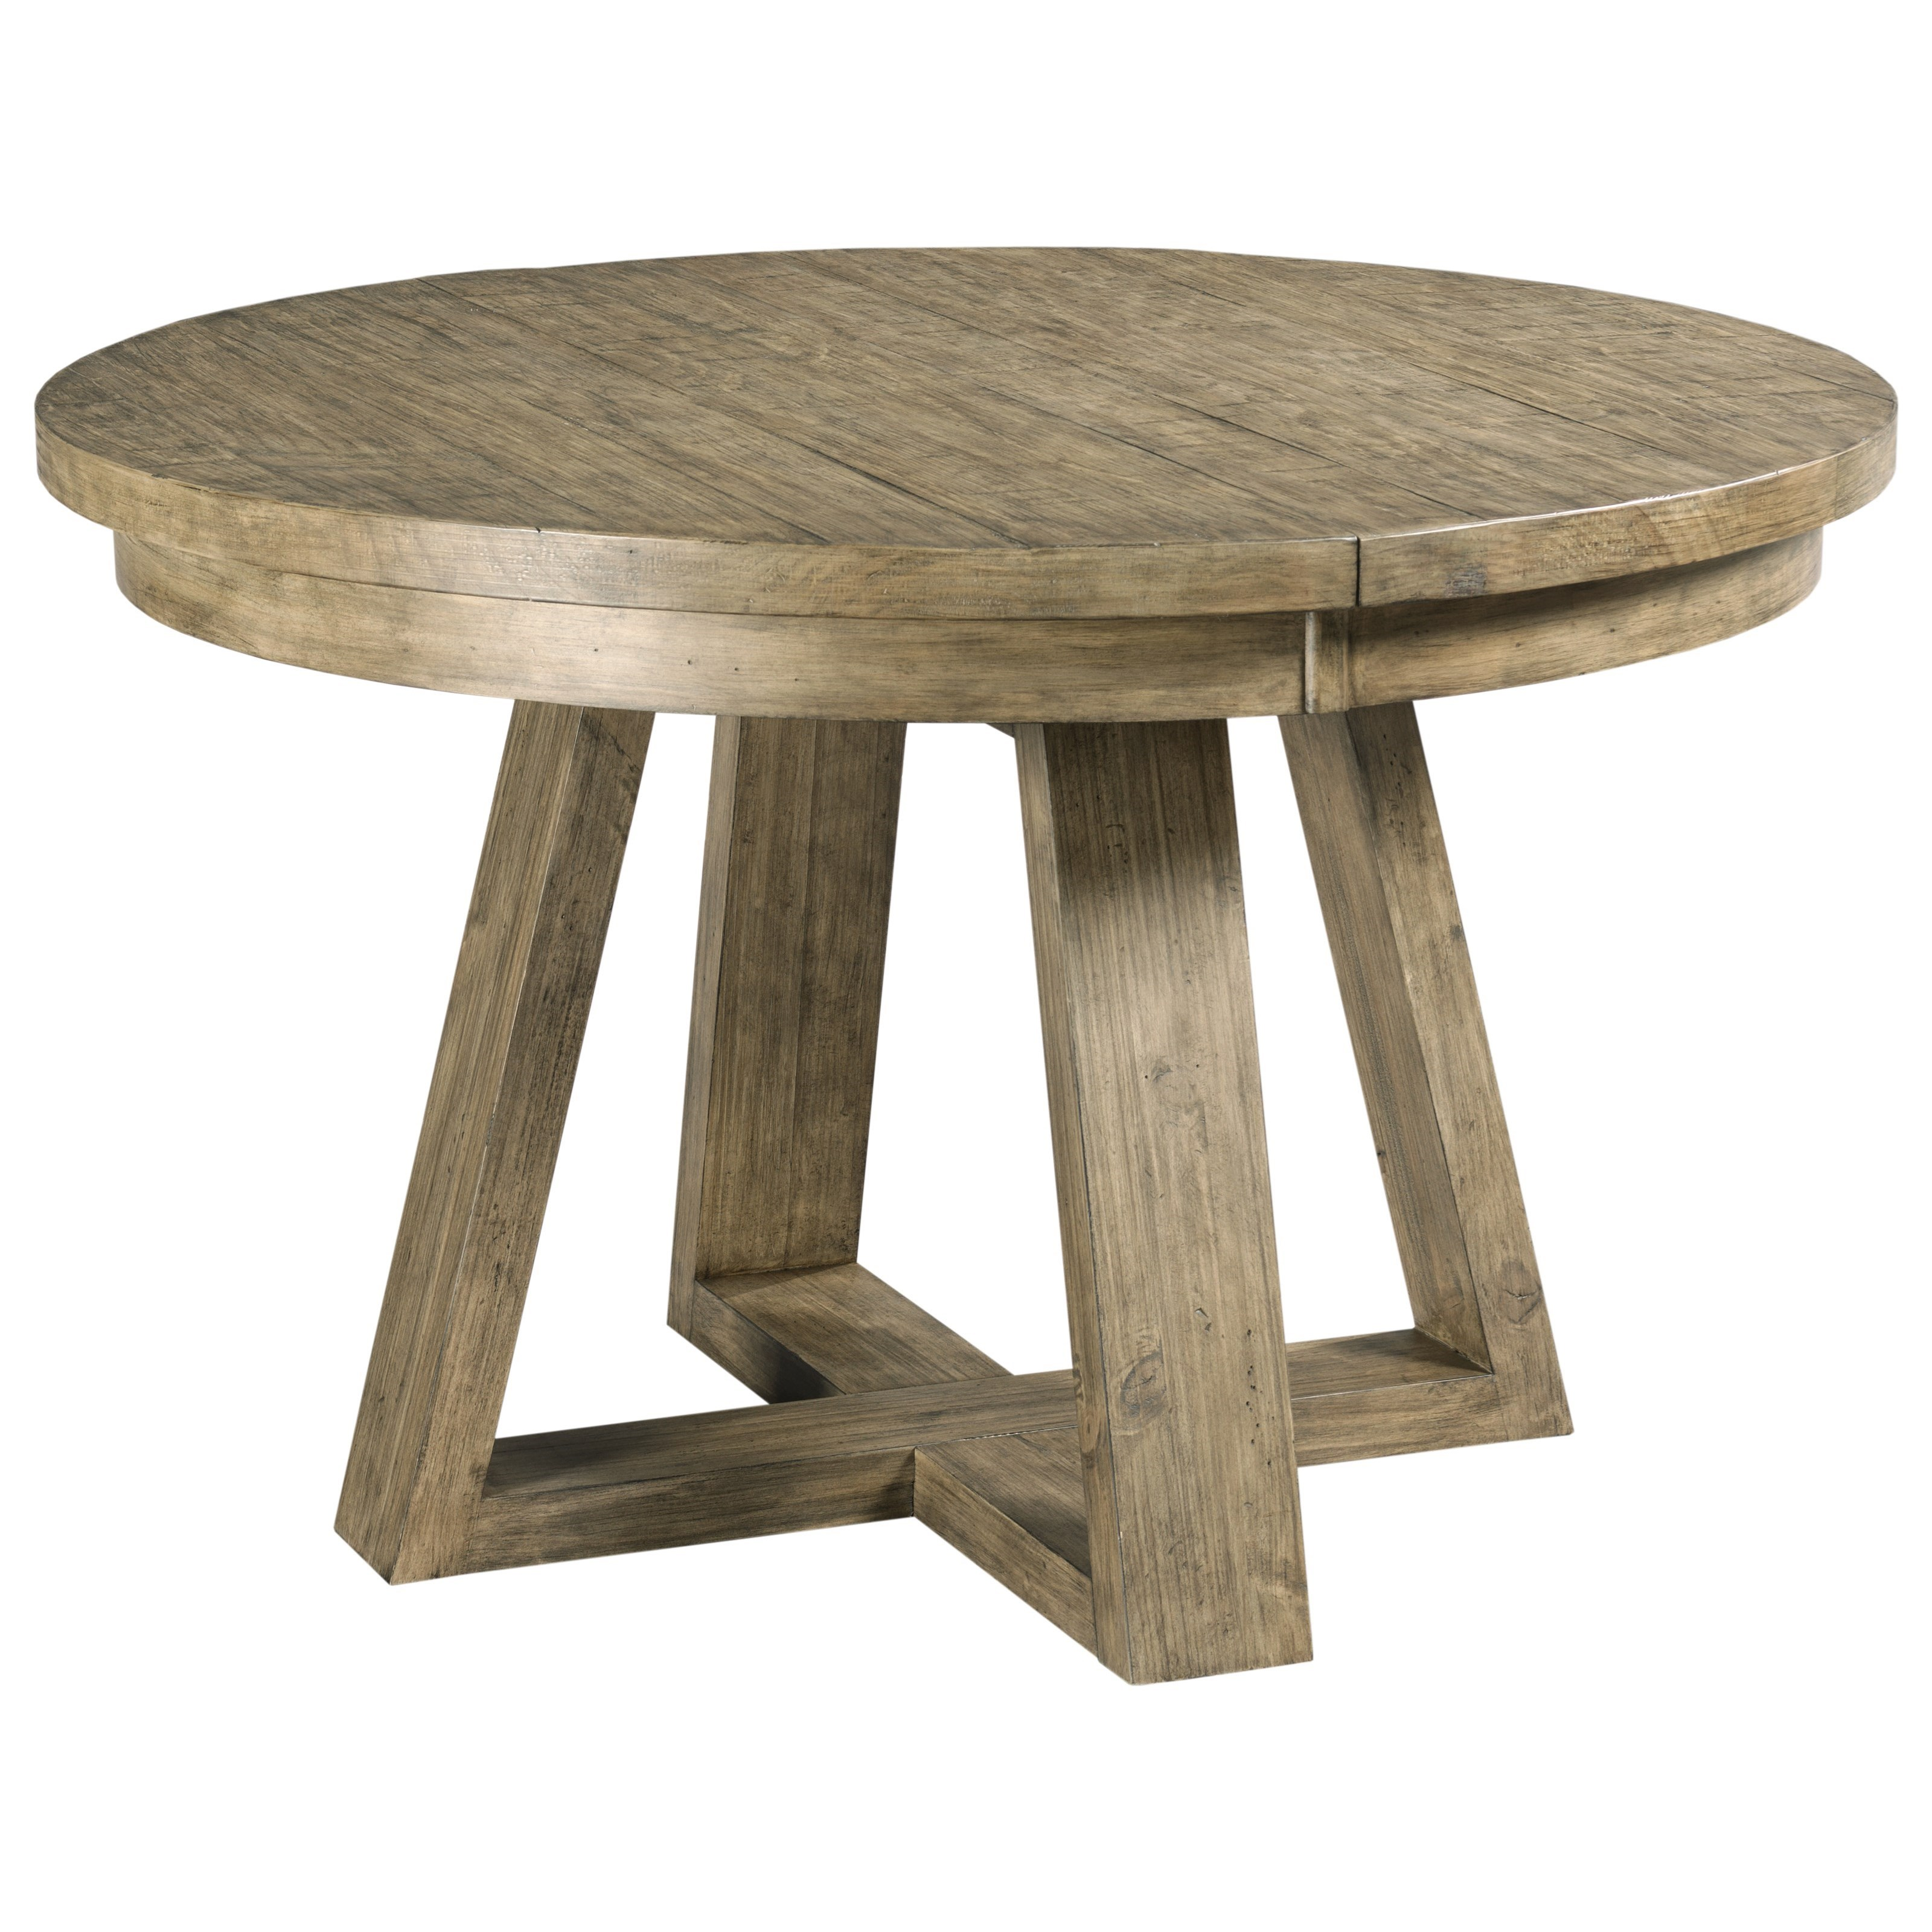 Plank Road Button Dining Table                          by Kincaid Furniture at Johnny Janosik